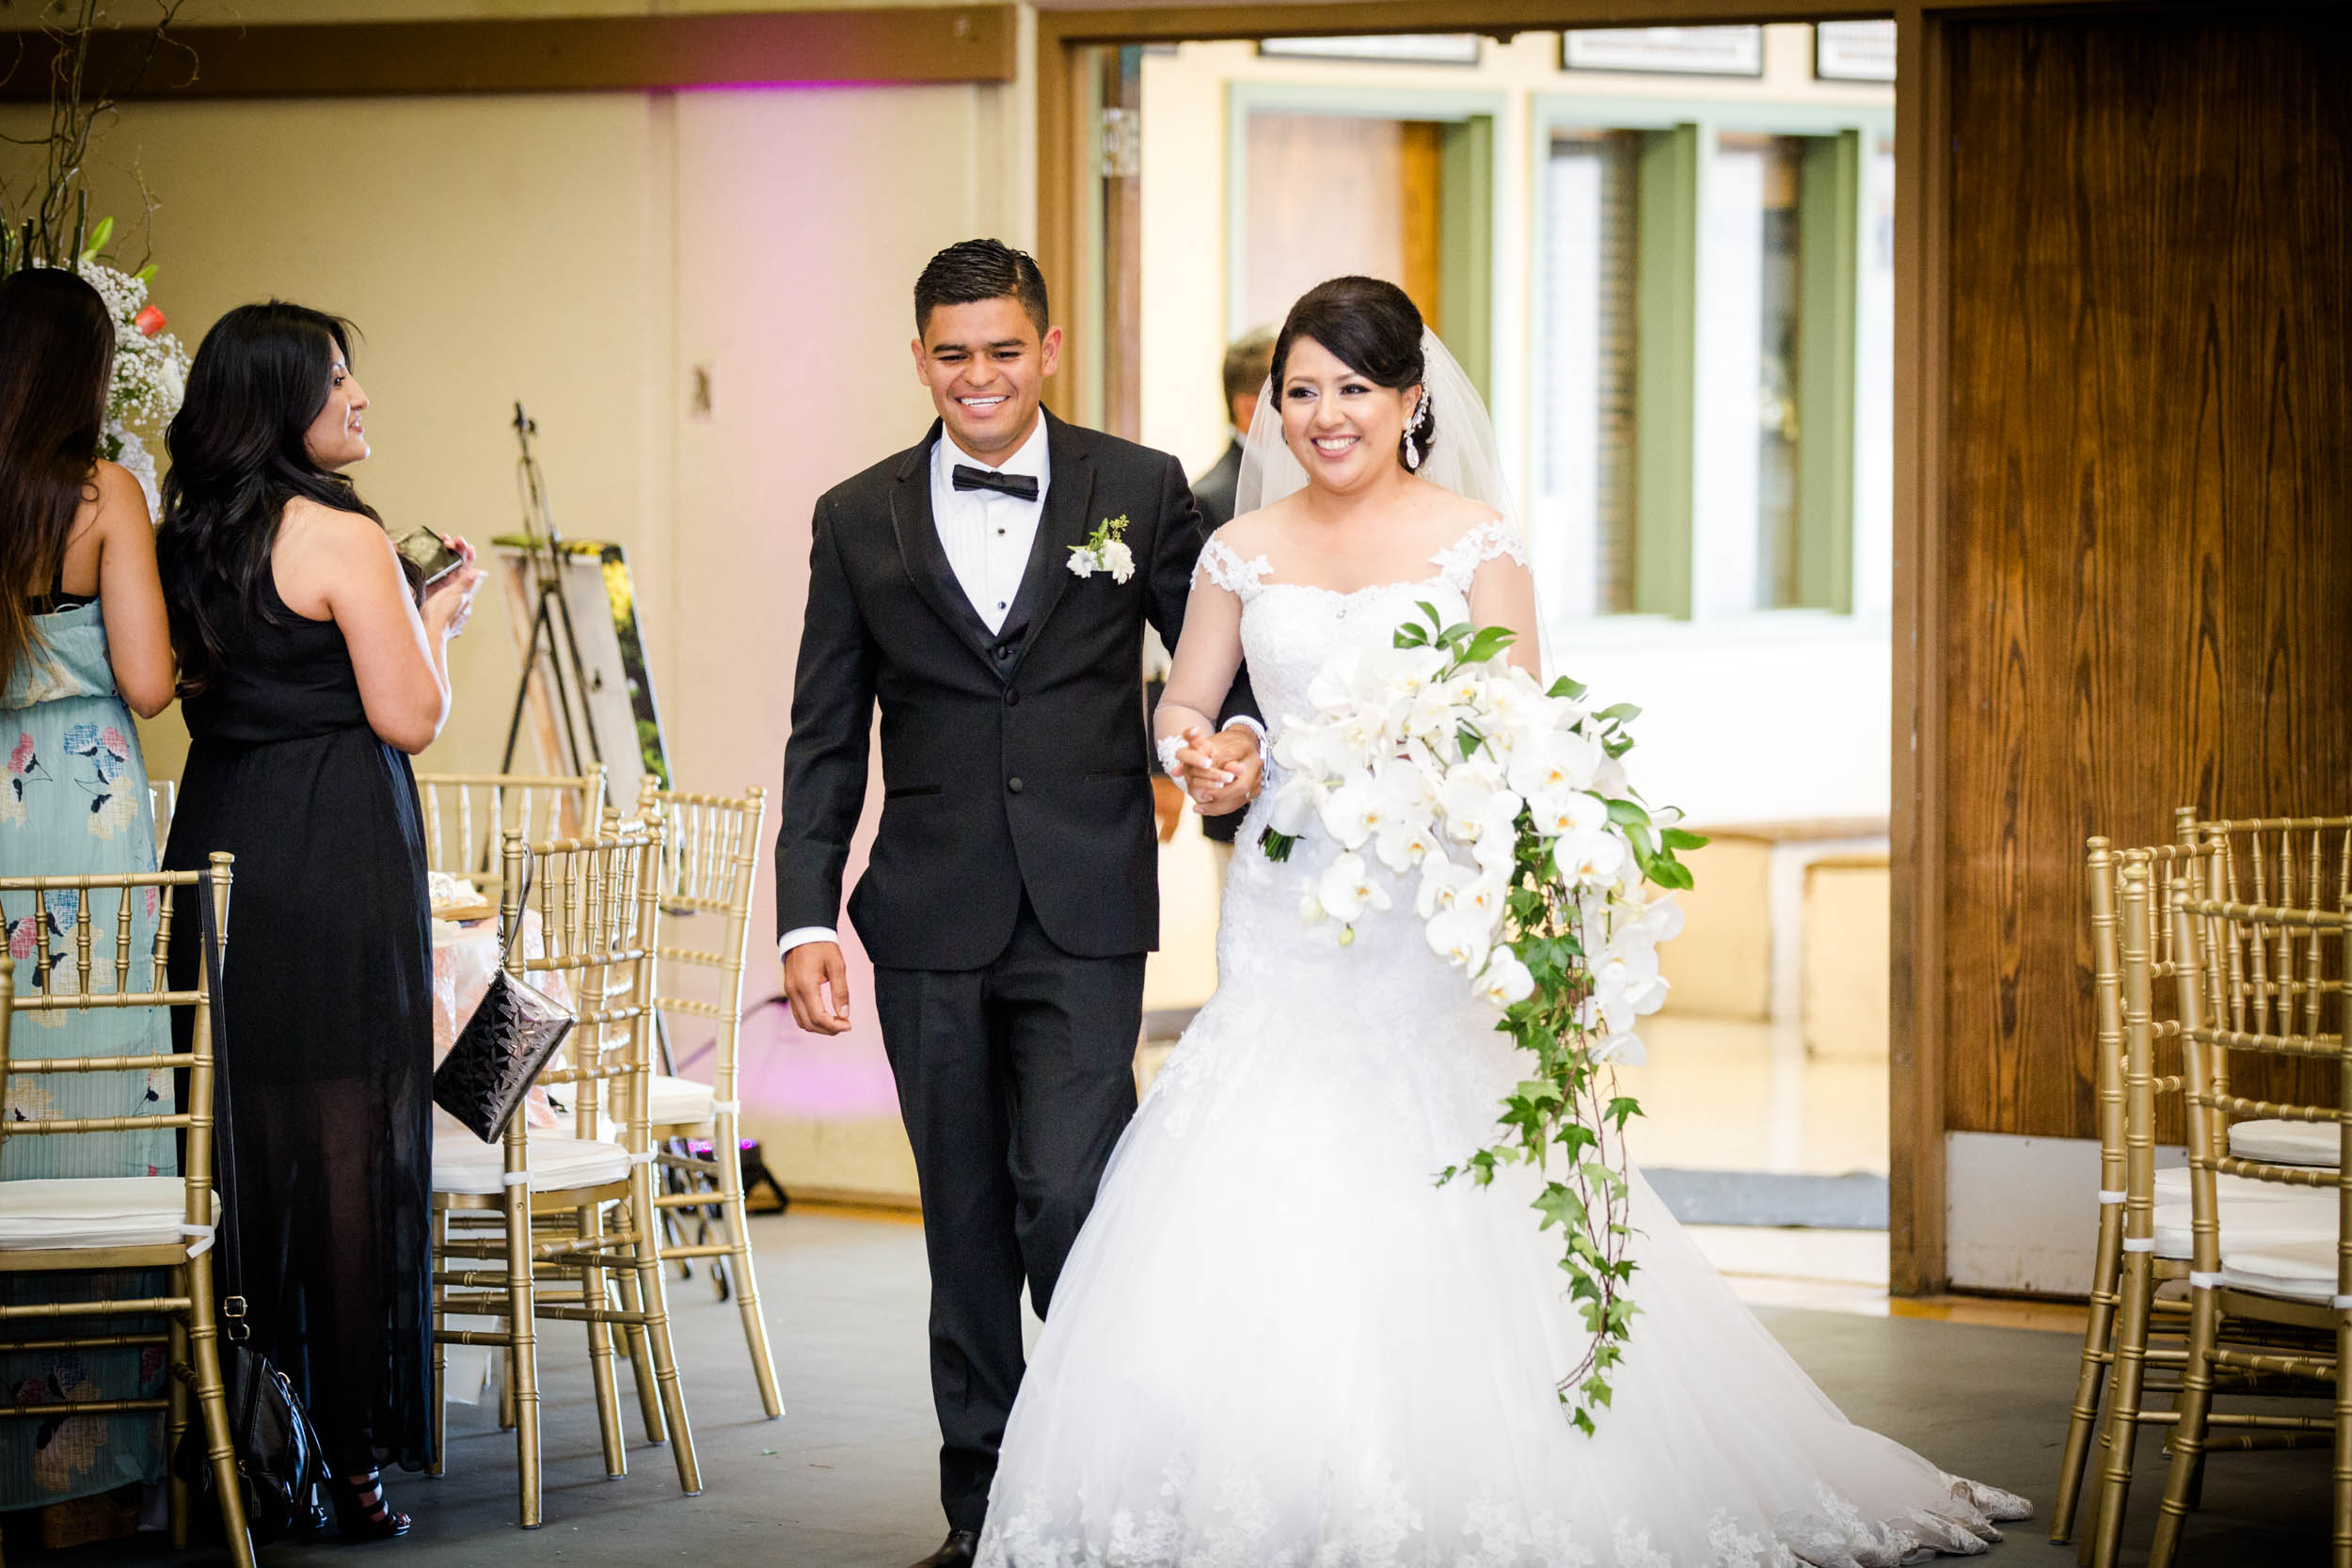 Our Wedding-423